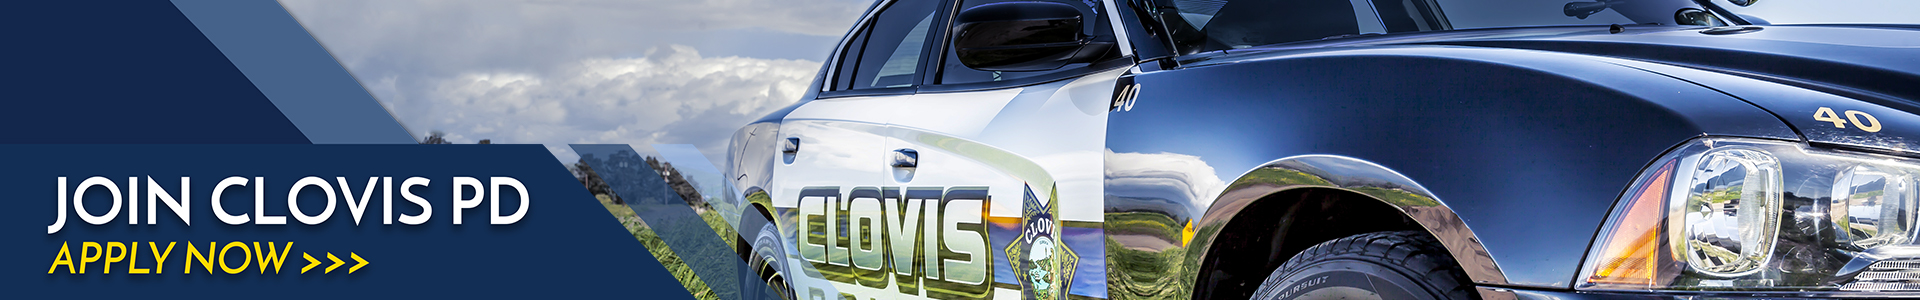 """Image of a Clovis police car and the words """"Join Clovis PD - Apply Now"""""""